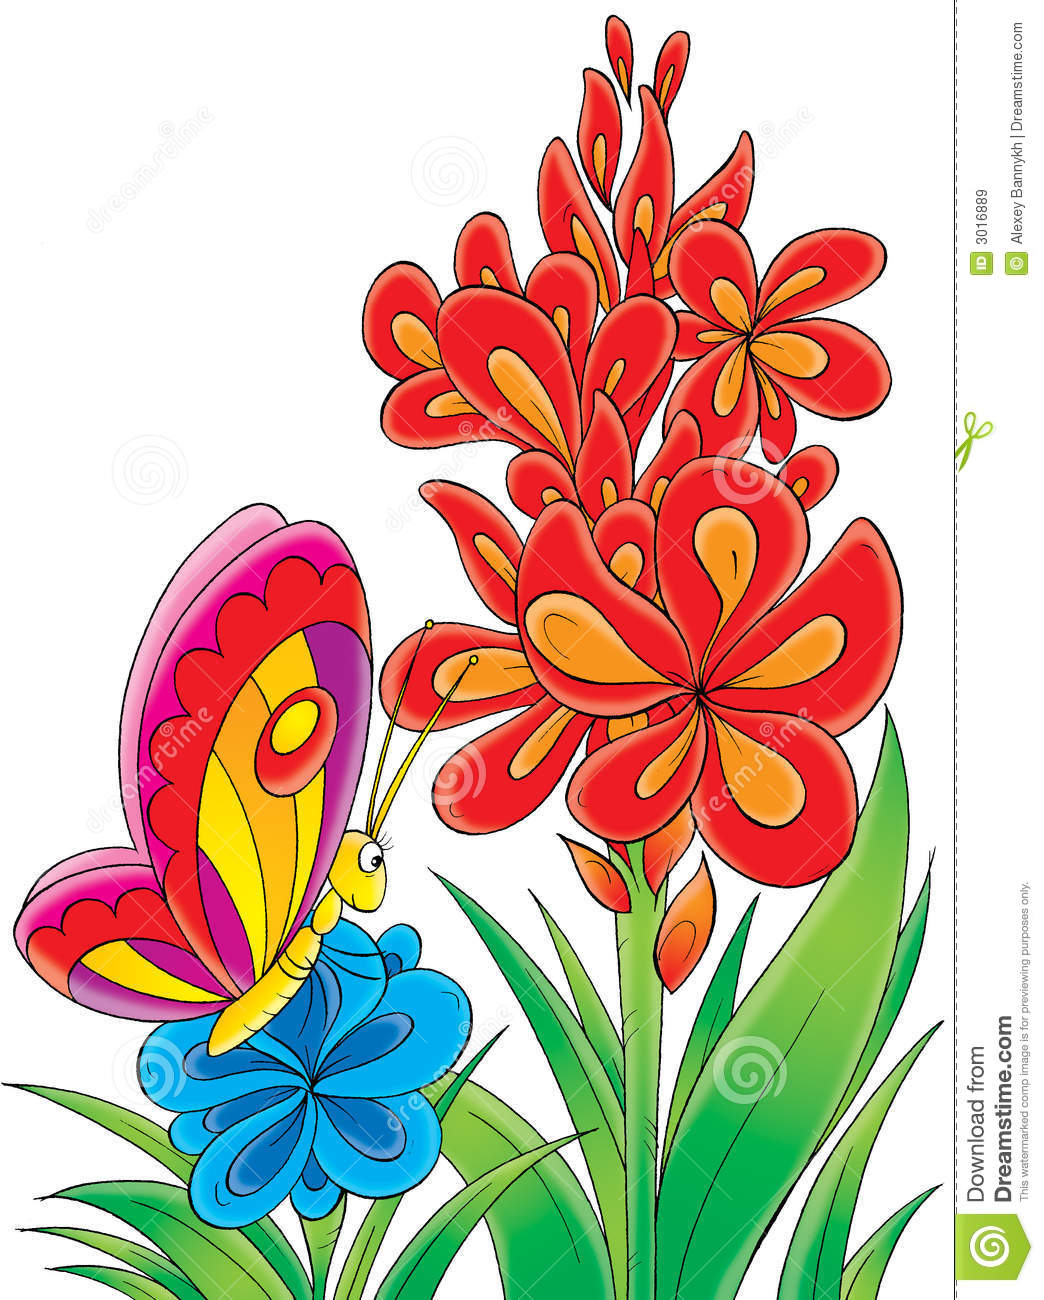 Butterfly and flowers clipart png library Butterfly on flower clipart - ClipartFest png library